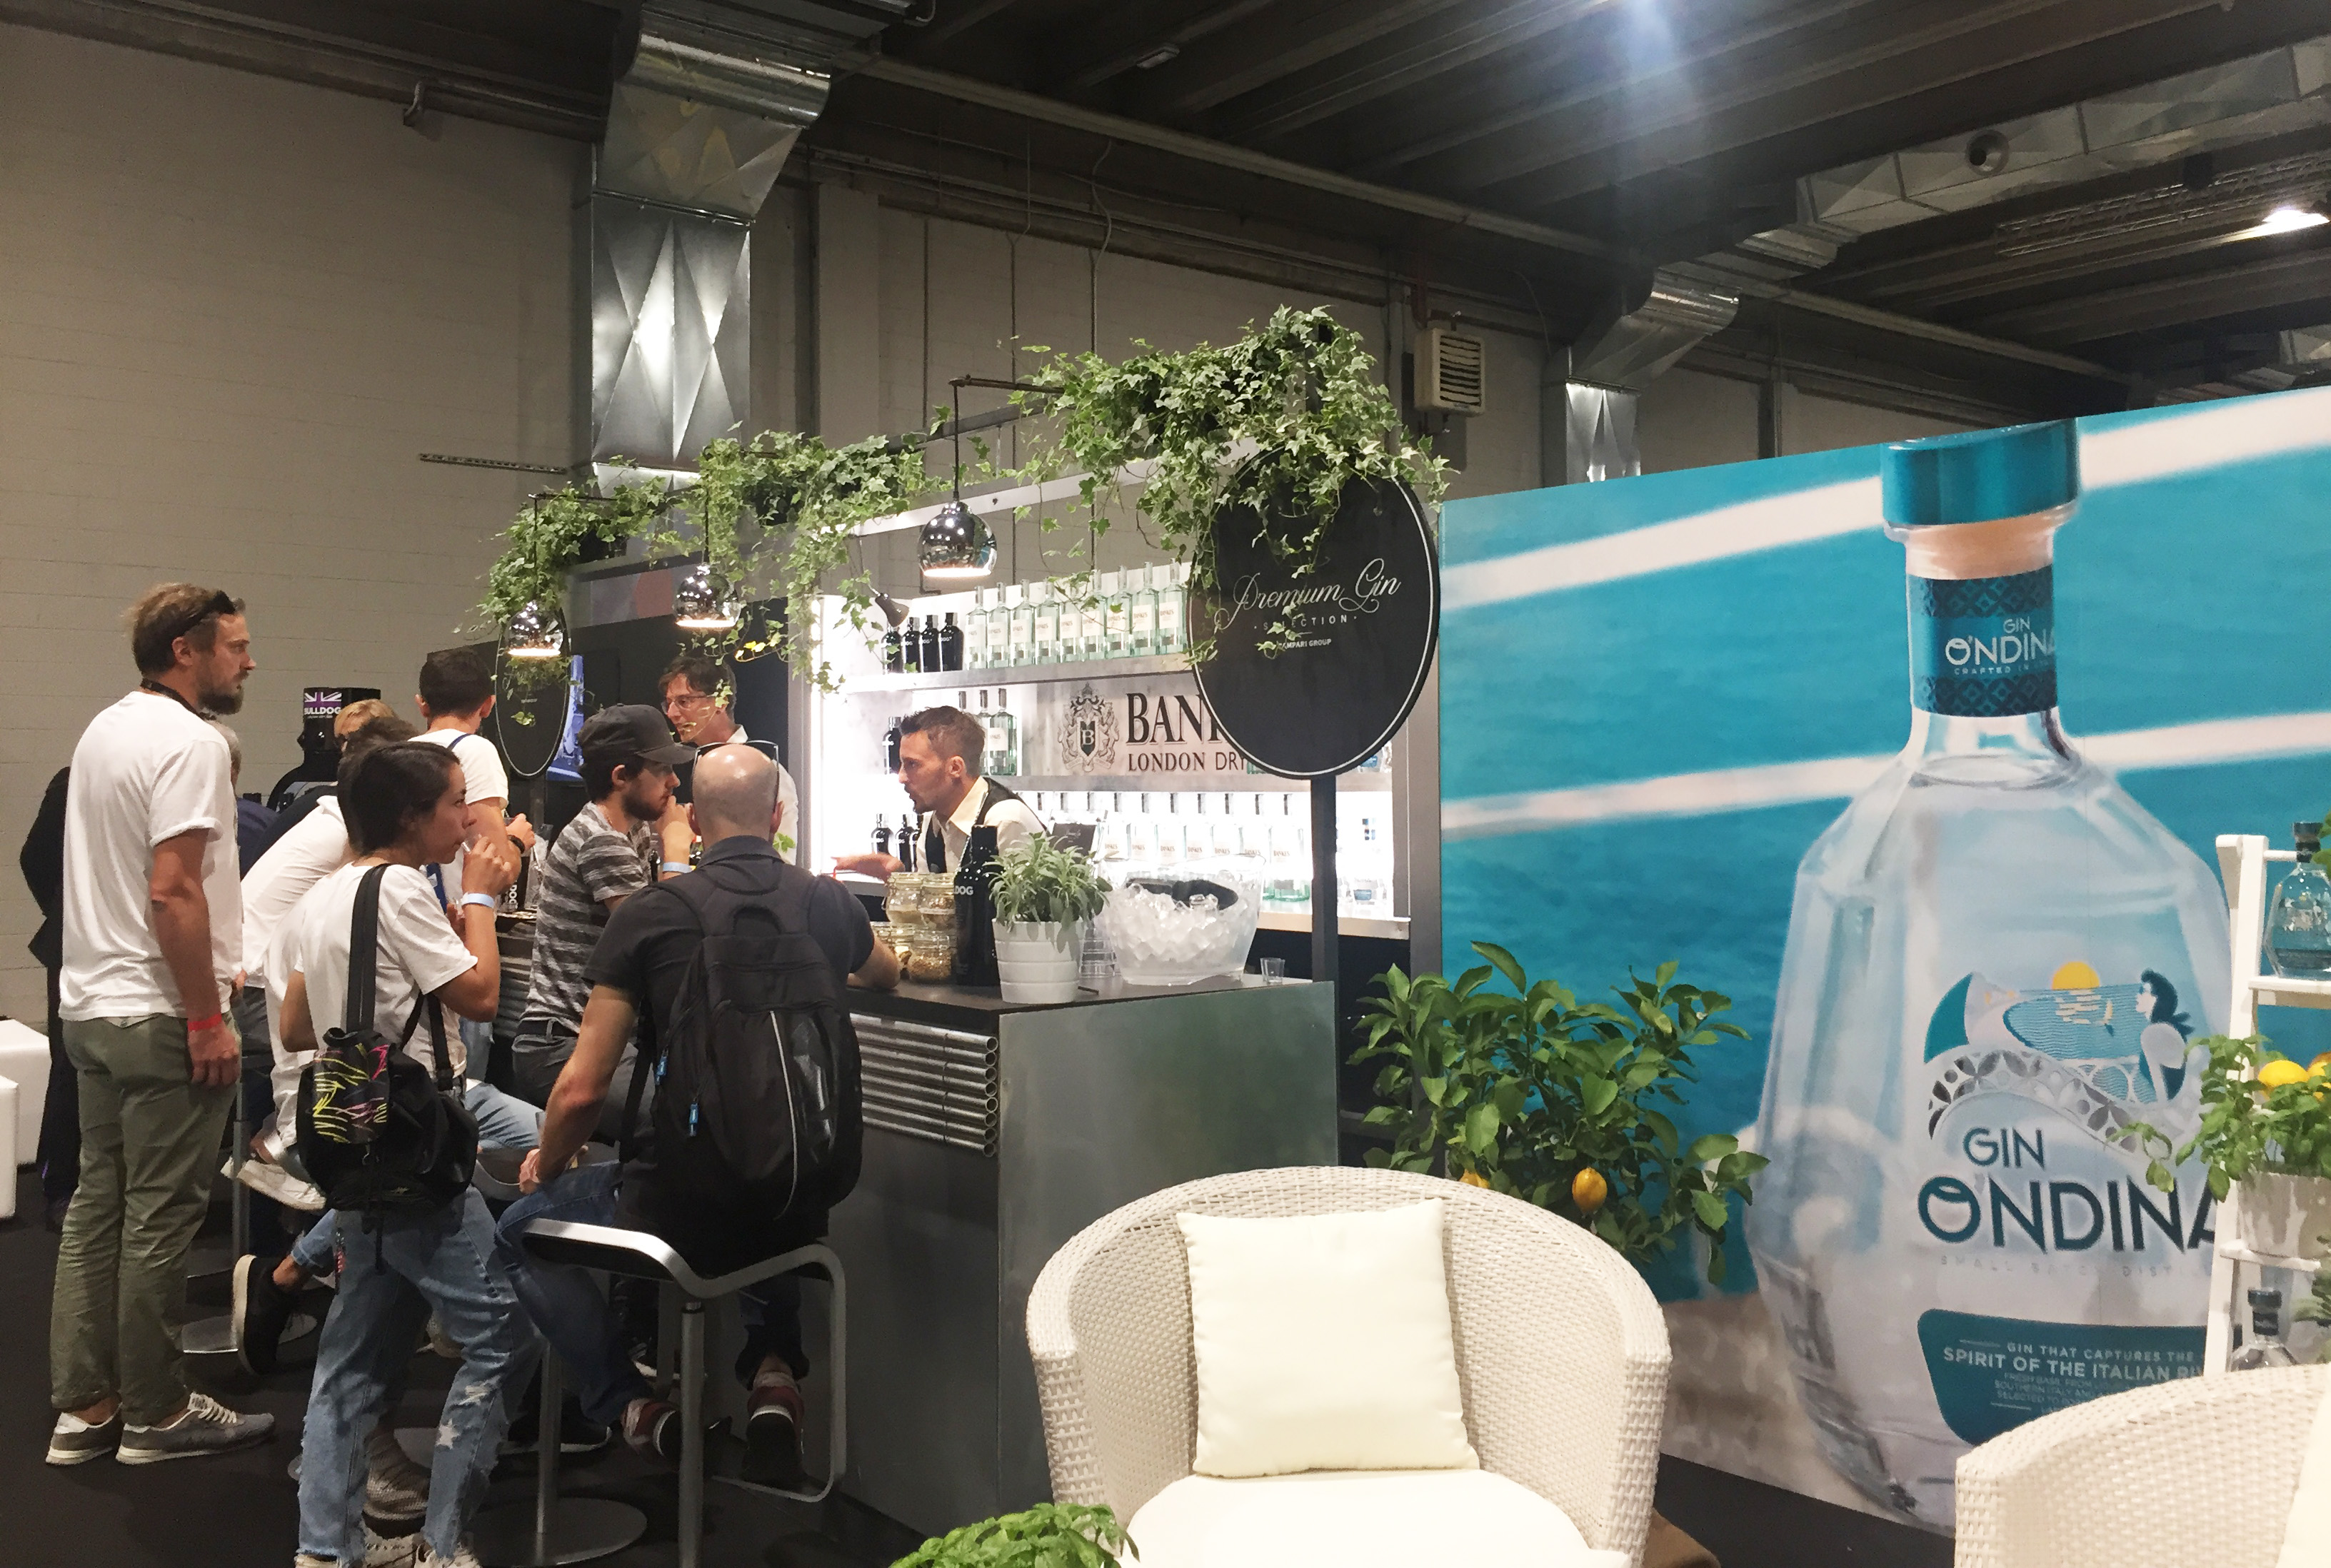 The Gin day 2018 - Juniper experience in via Watt 15 - 6